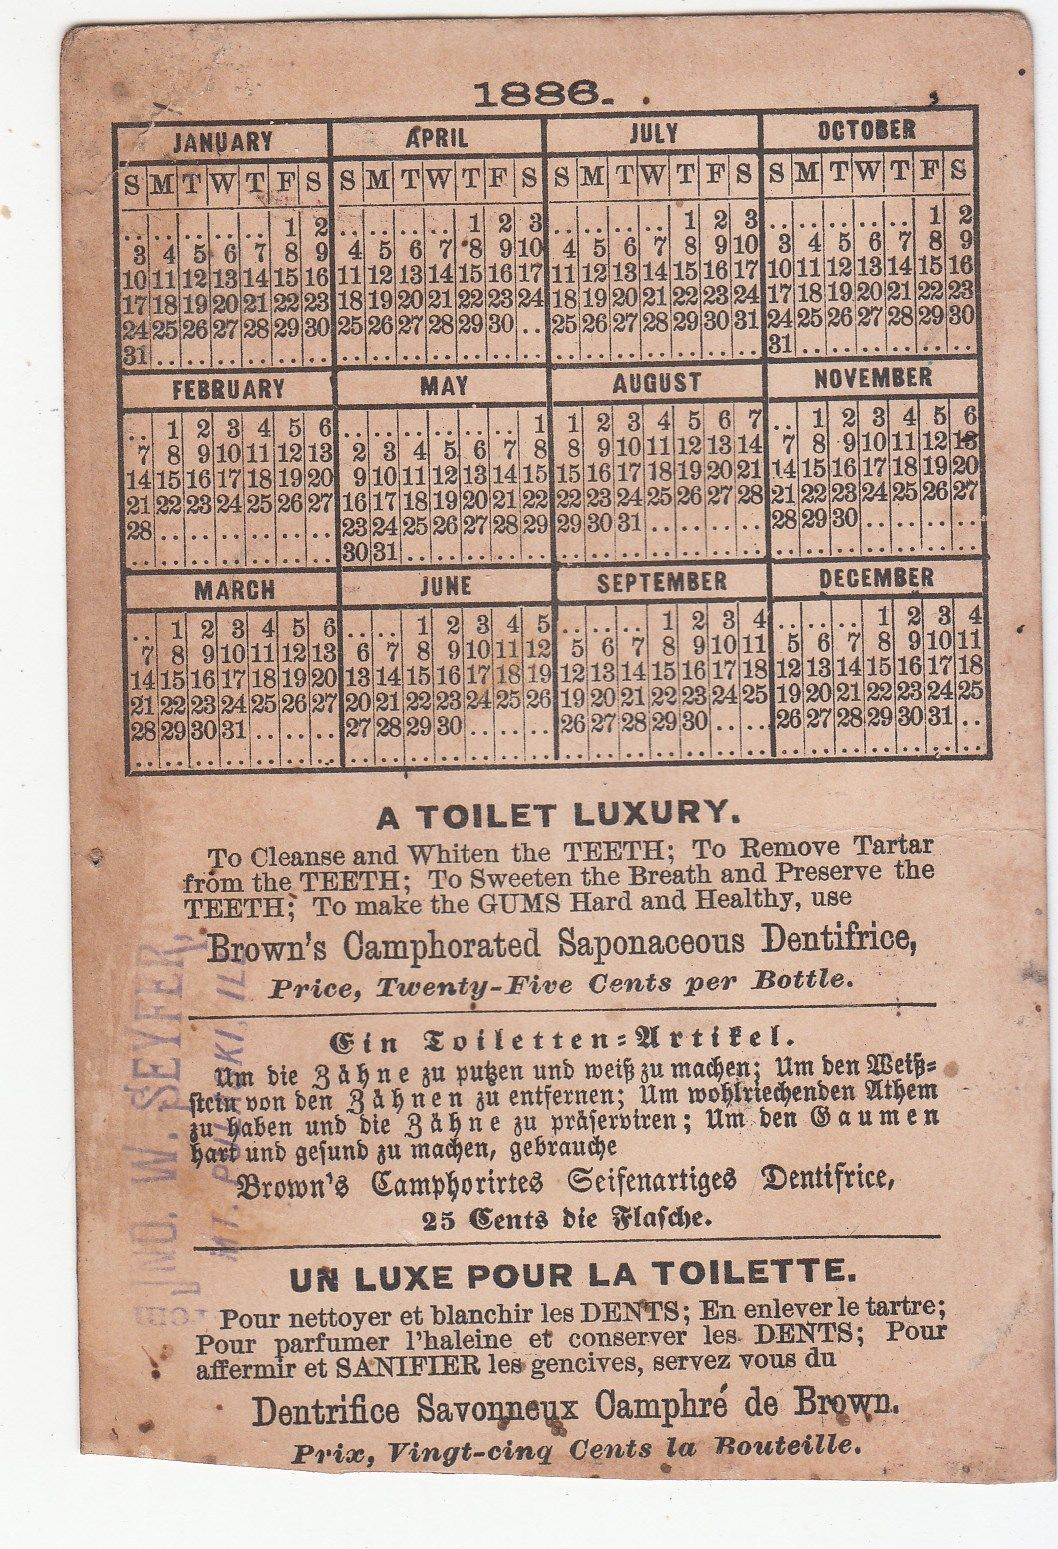 2/ Mrs Winslow's Soothing Syrup for Teething 1886 Calendar Bed Newspaper C 1880s